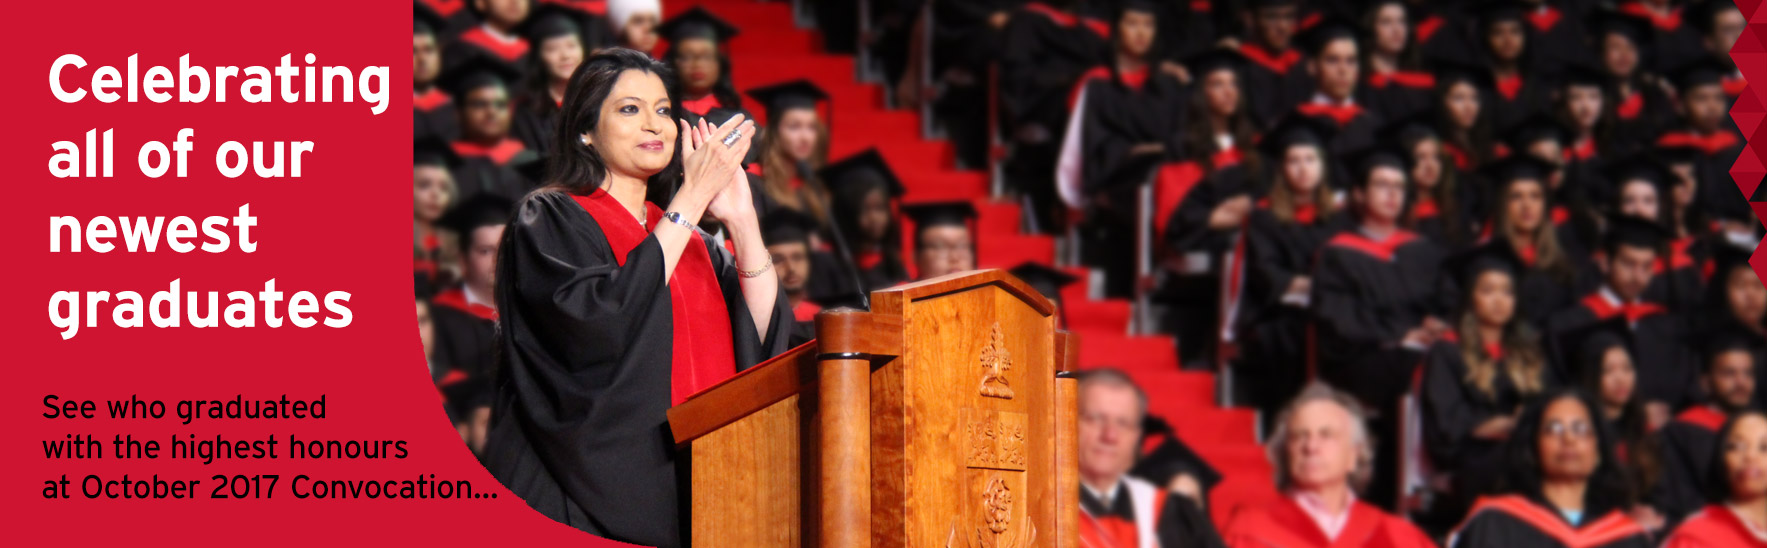 Convocation top grads redirect page for post-event 2017-10